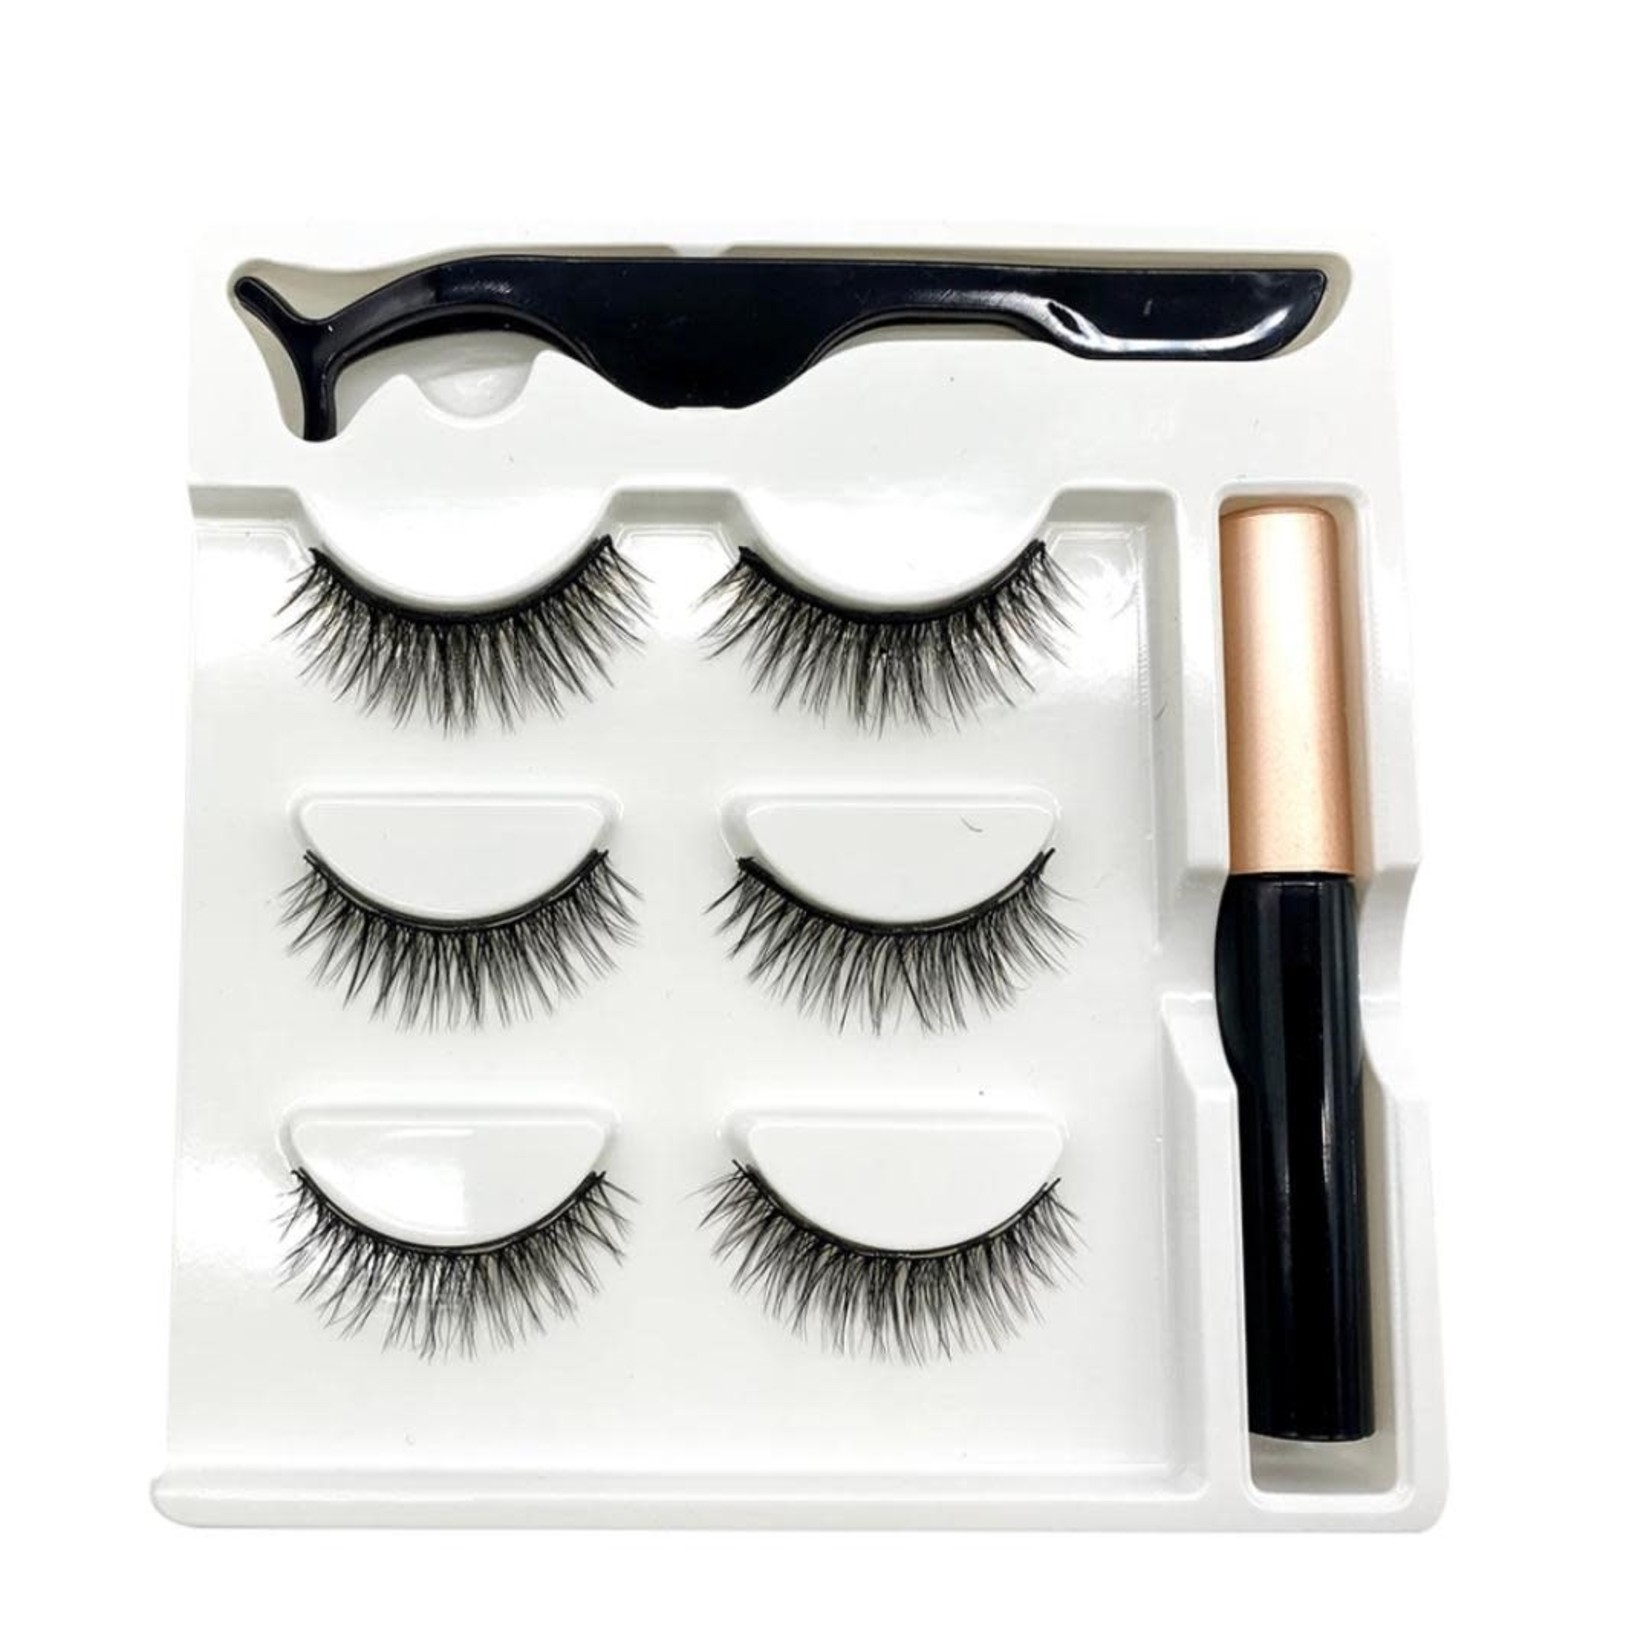 714 - 3  MAGNETIC LASHES 1 EYELINER AND 1 LASH APPLICATOR VARIOUS SIZES